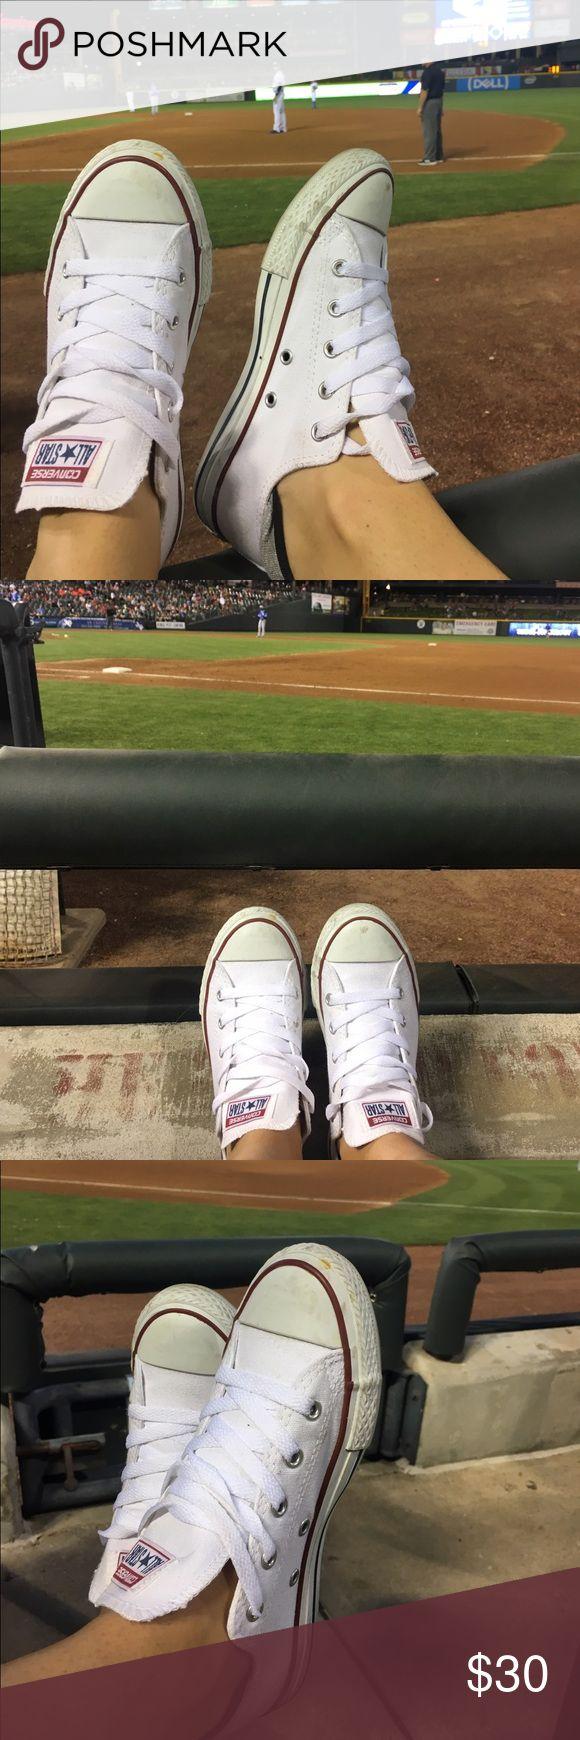 White Converse SIZE 3 LIKE SIZE 6! Great condition. Worn a few times - too small for me. I'm a size 7 and bought these in kids size 3! Would fit a size 6.5 or anywhere below in women's comfortably!  THESE ARE NOT ADULT - KID SIZE 3! Will cleanup before sale, just a little bit of baseball dirt 😆 Converse Shoes Sneakers